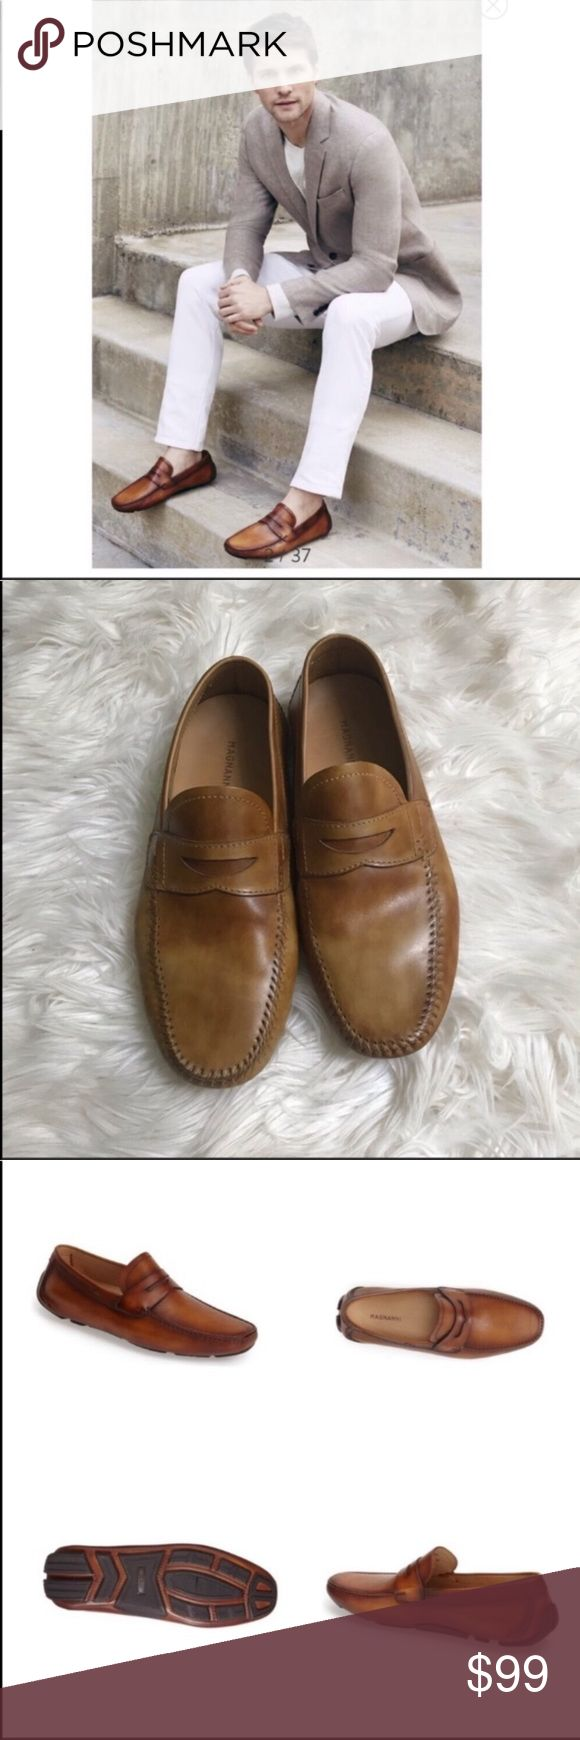 Magnanni men's loafers / drivers 8.5 Purchased at Nordstrom in excellent condi...